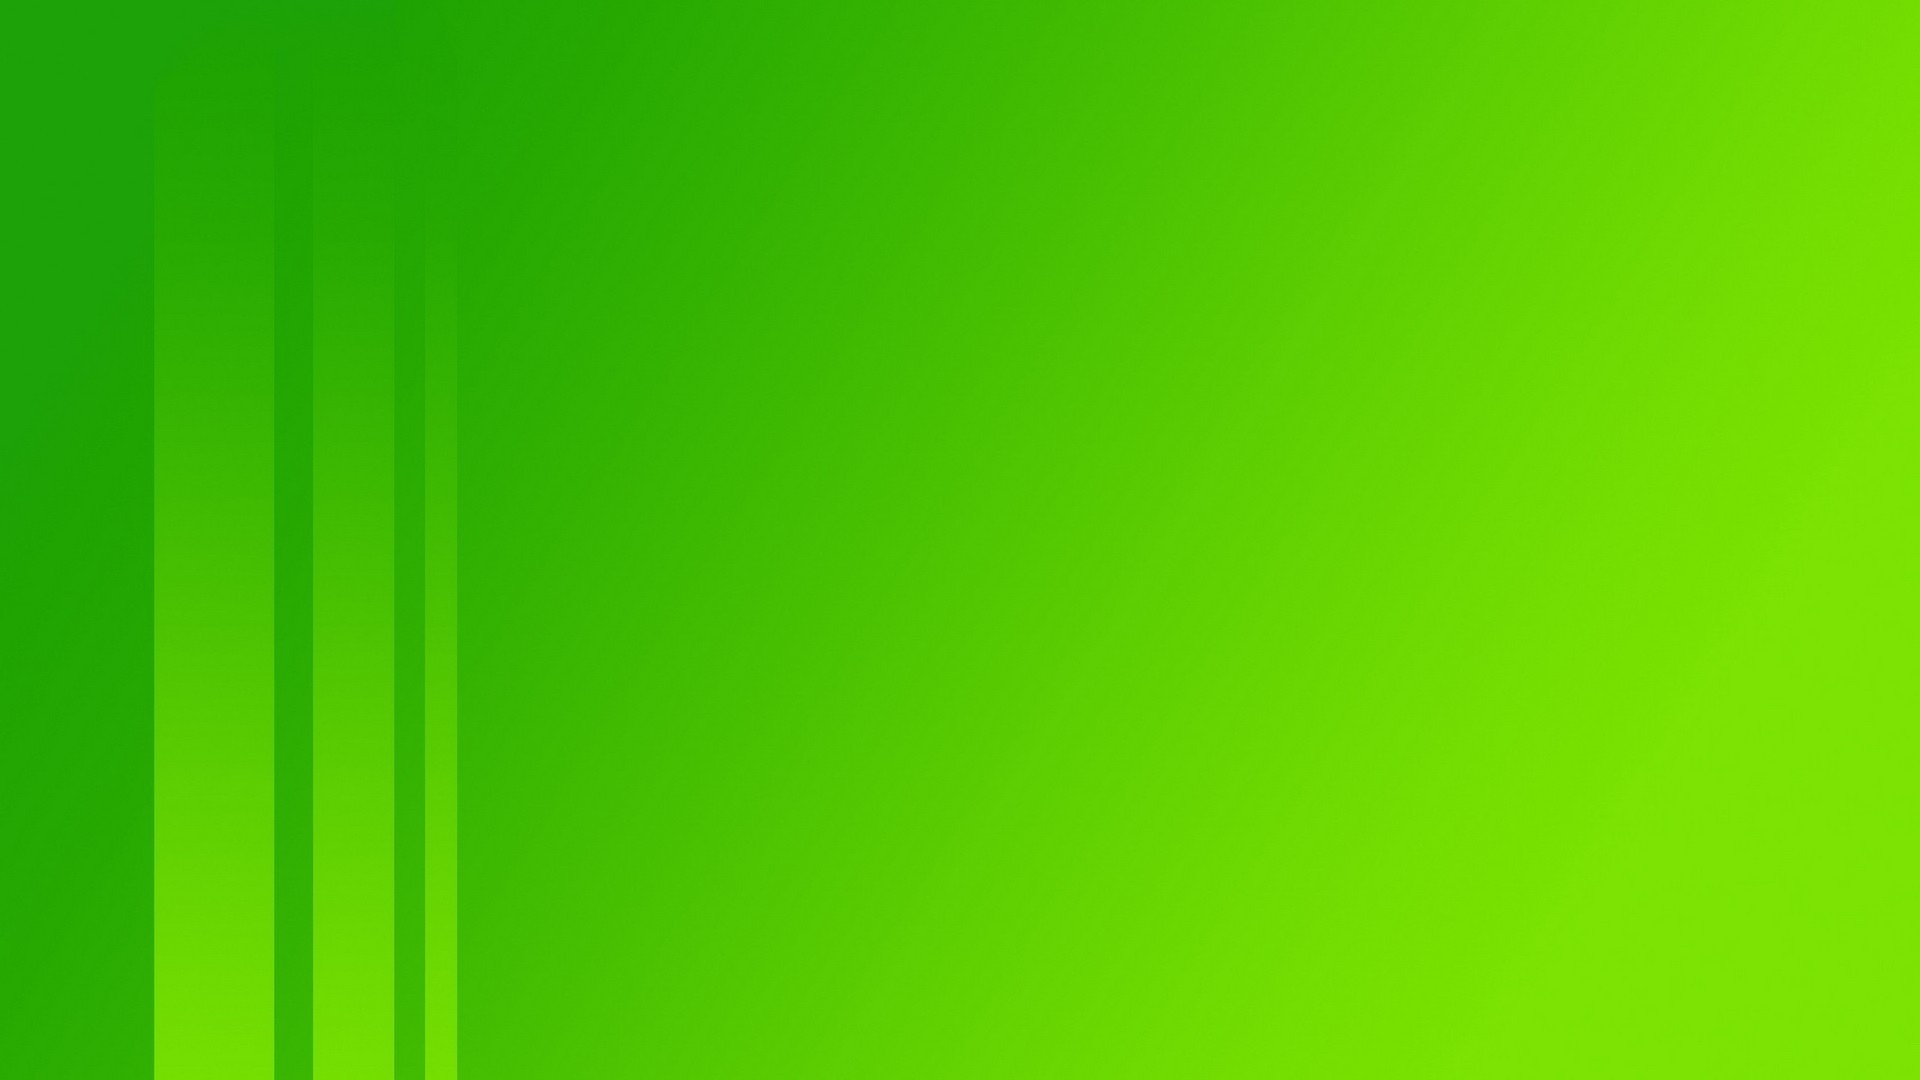 1920x1080 Solid Bright Green Background - wallpaper.